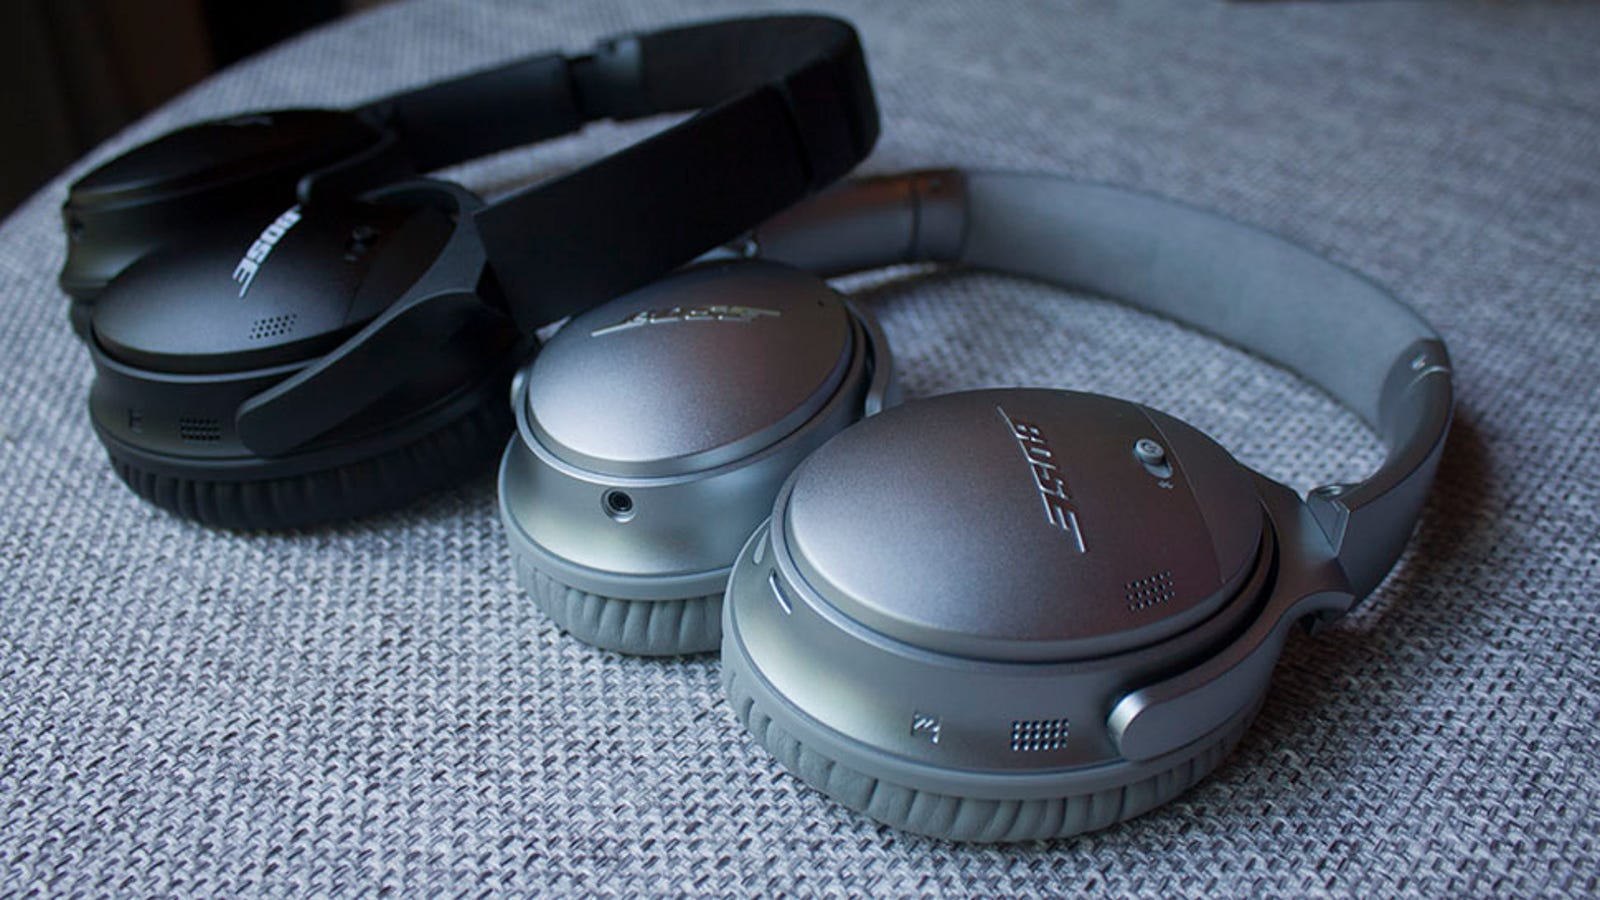 guitar headphone amp aux input - Bose's Best Noise-Canceling Headphones Finally Go Wireless